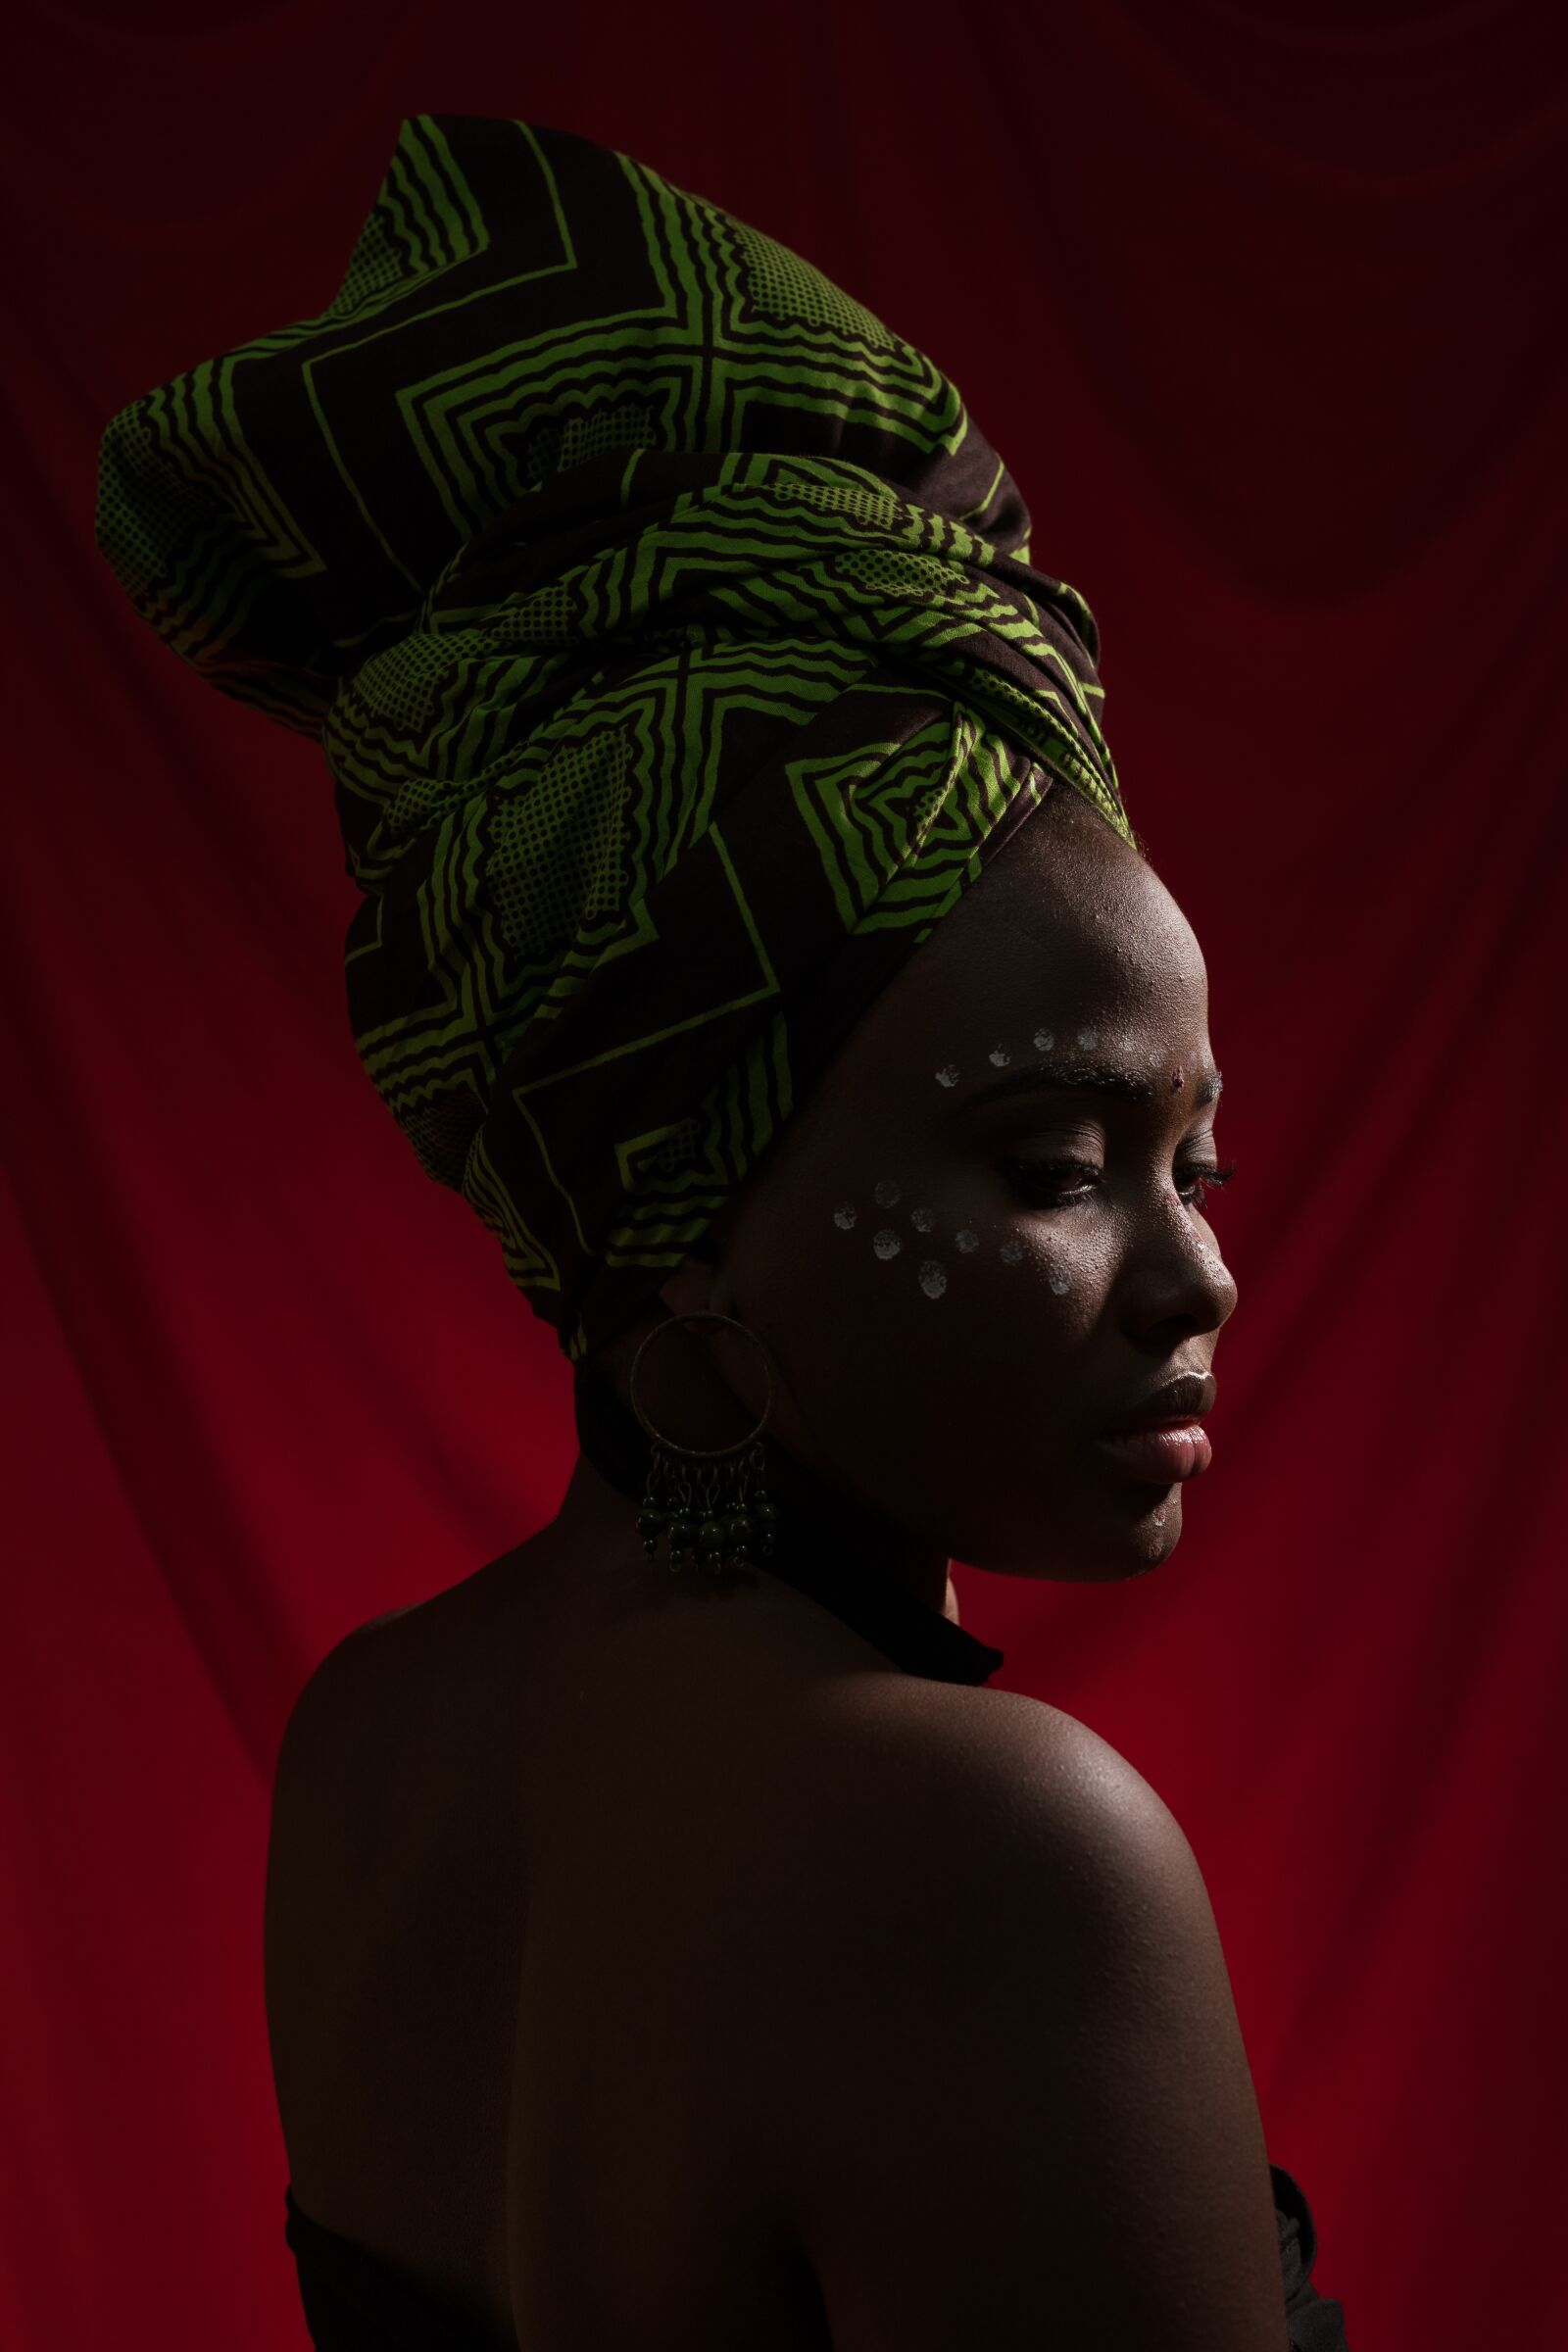 """Sony a6300 sample photo. """"African, afro, turban"""" photography"""